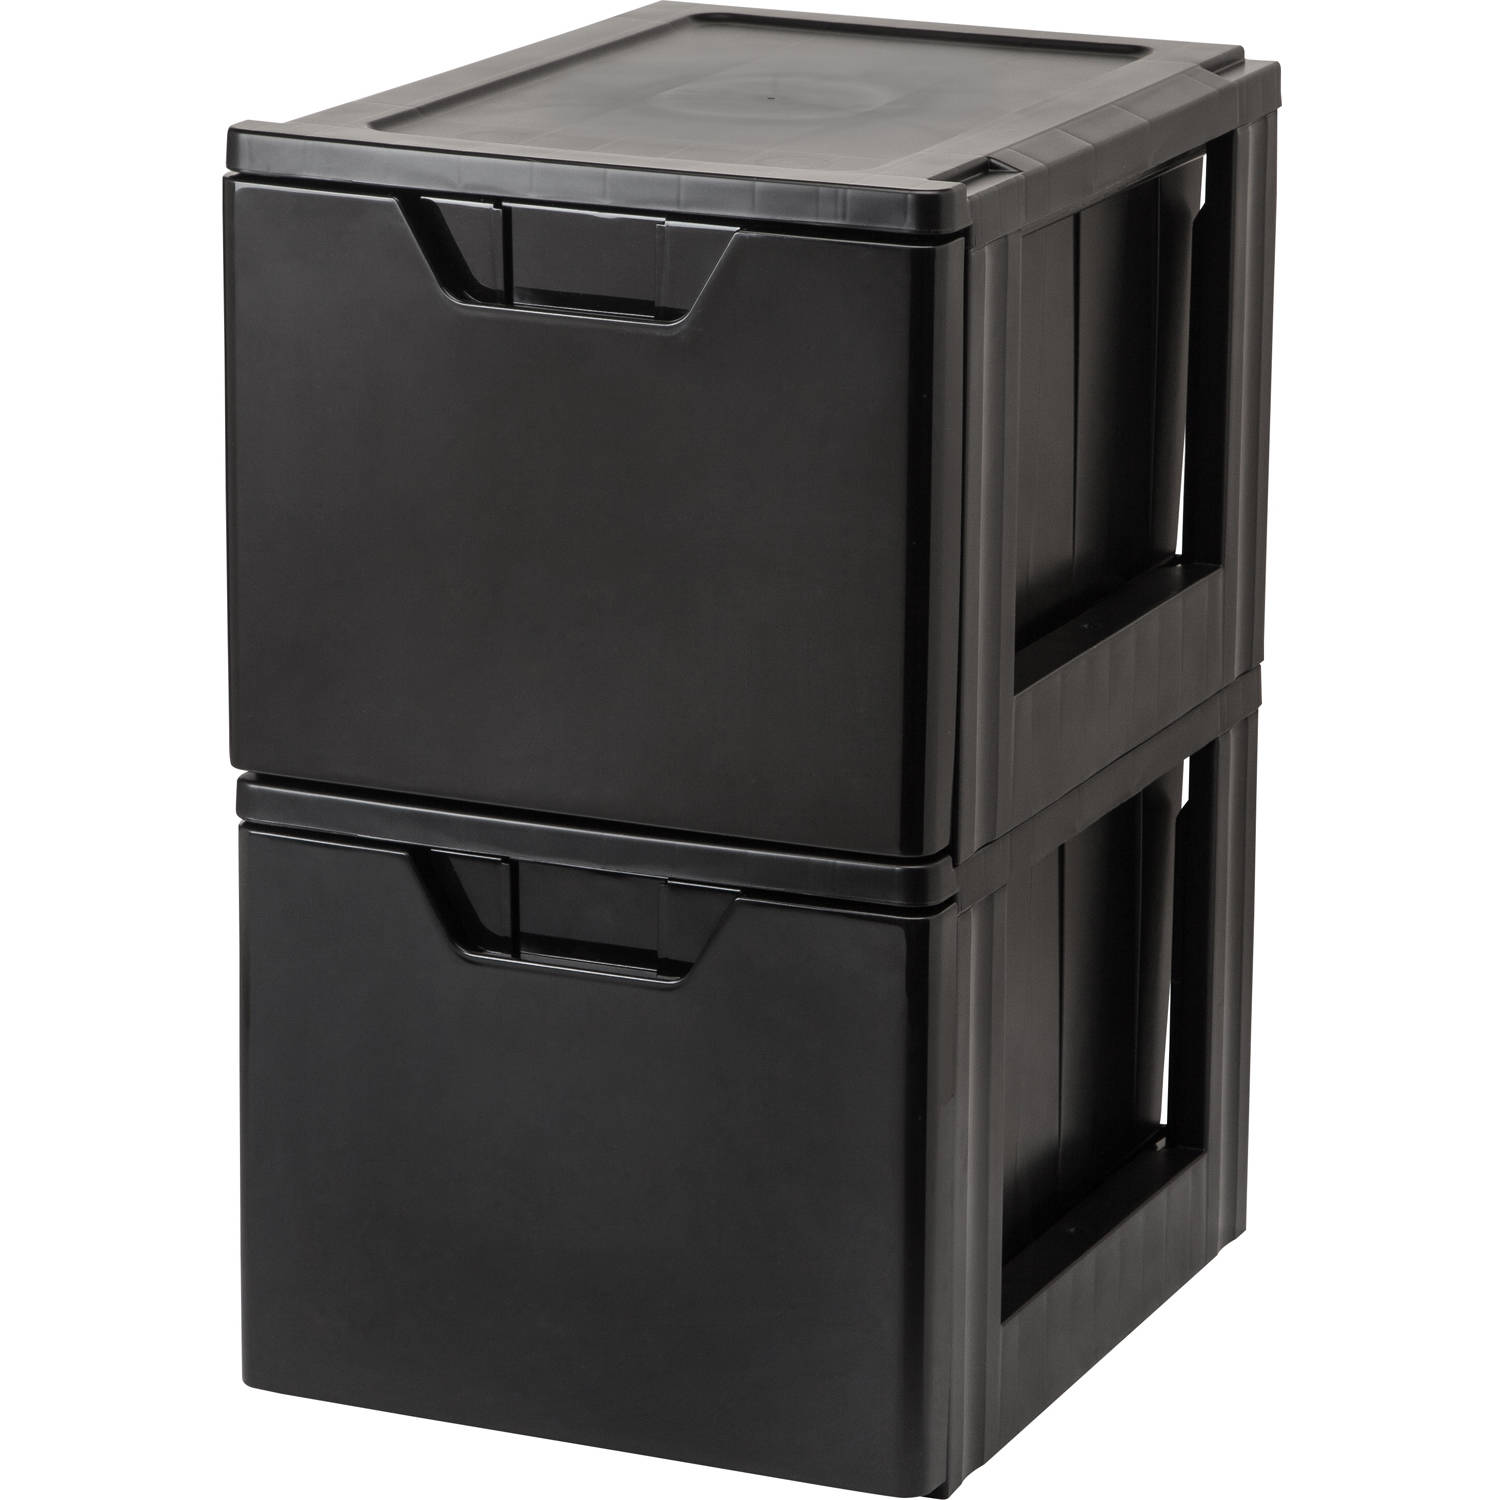 IRIS Letter Size Stacking File Storage Drawer, Black